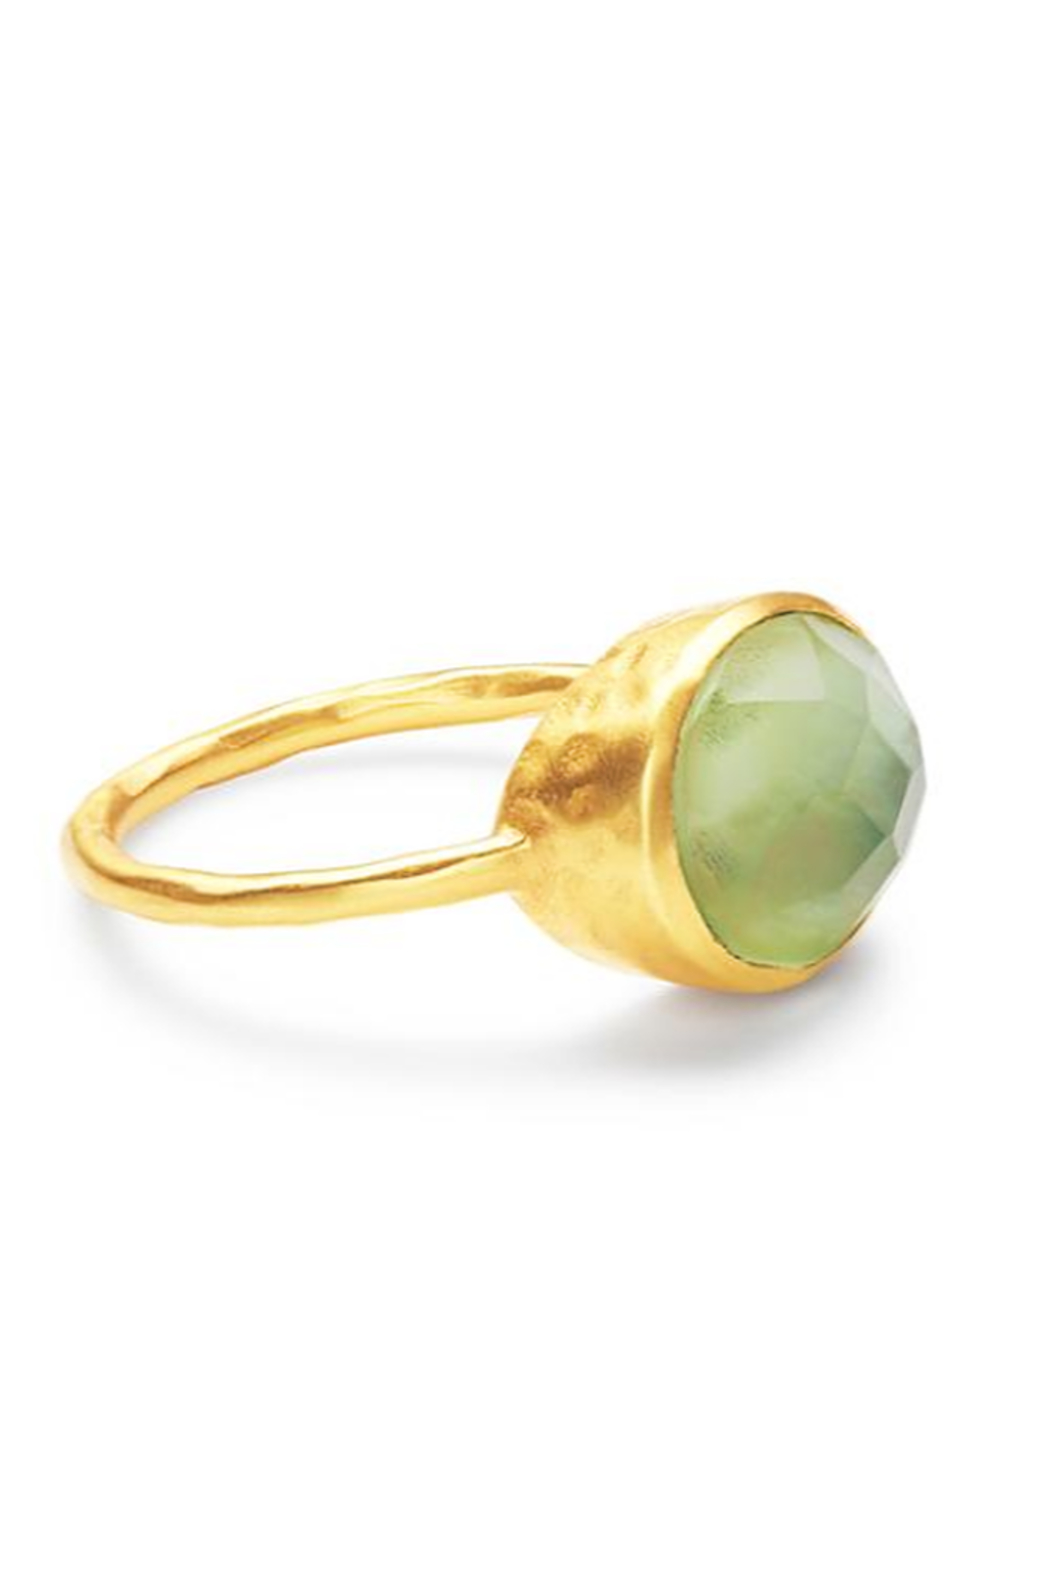 The Birds Nest HONEY STACKING RING IN IRIDESCENT PERIDOT GREEN - Front Cropped Image